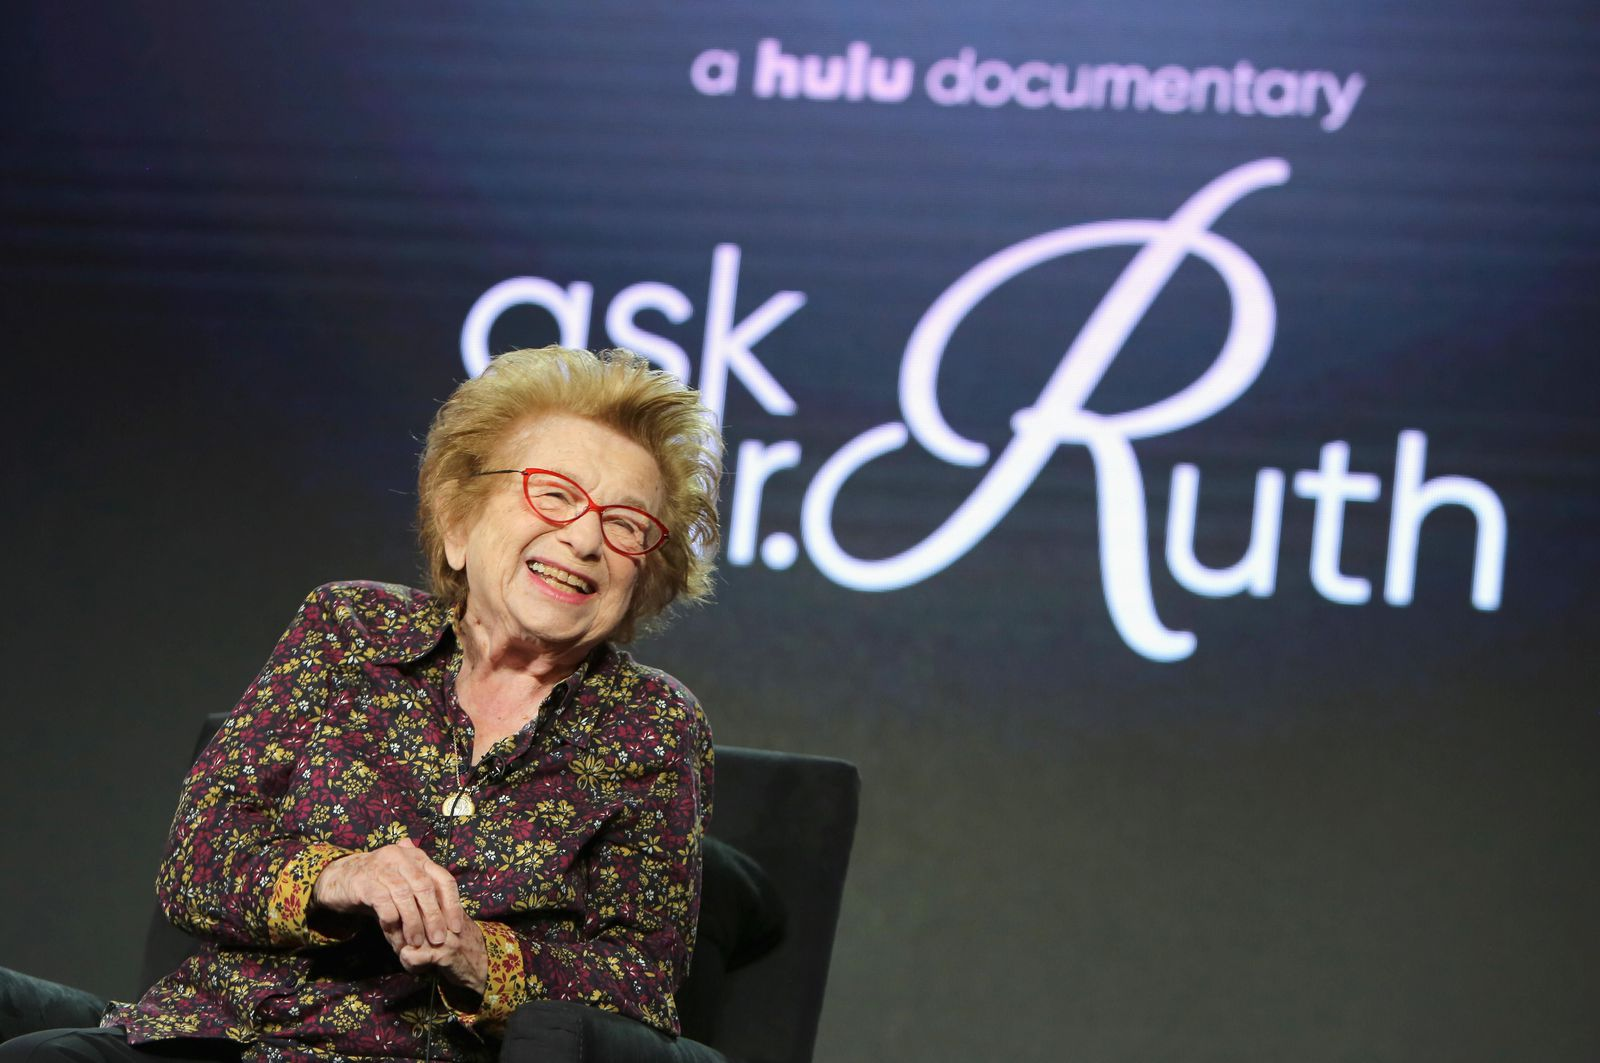 Dr. Ruth Changed the Way America Talked About Sex | Arts & Culture